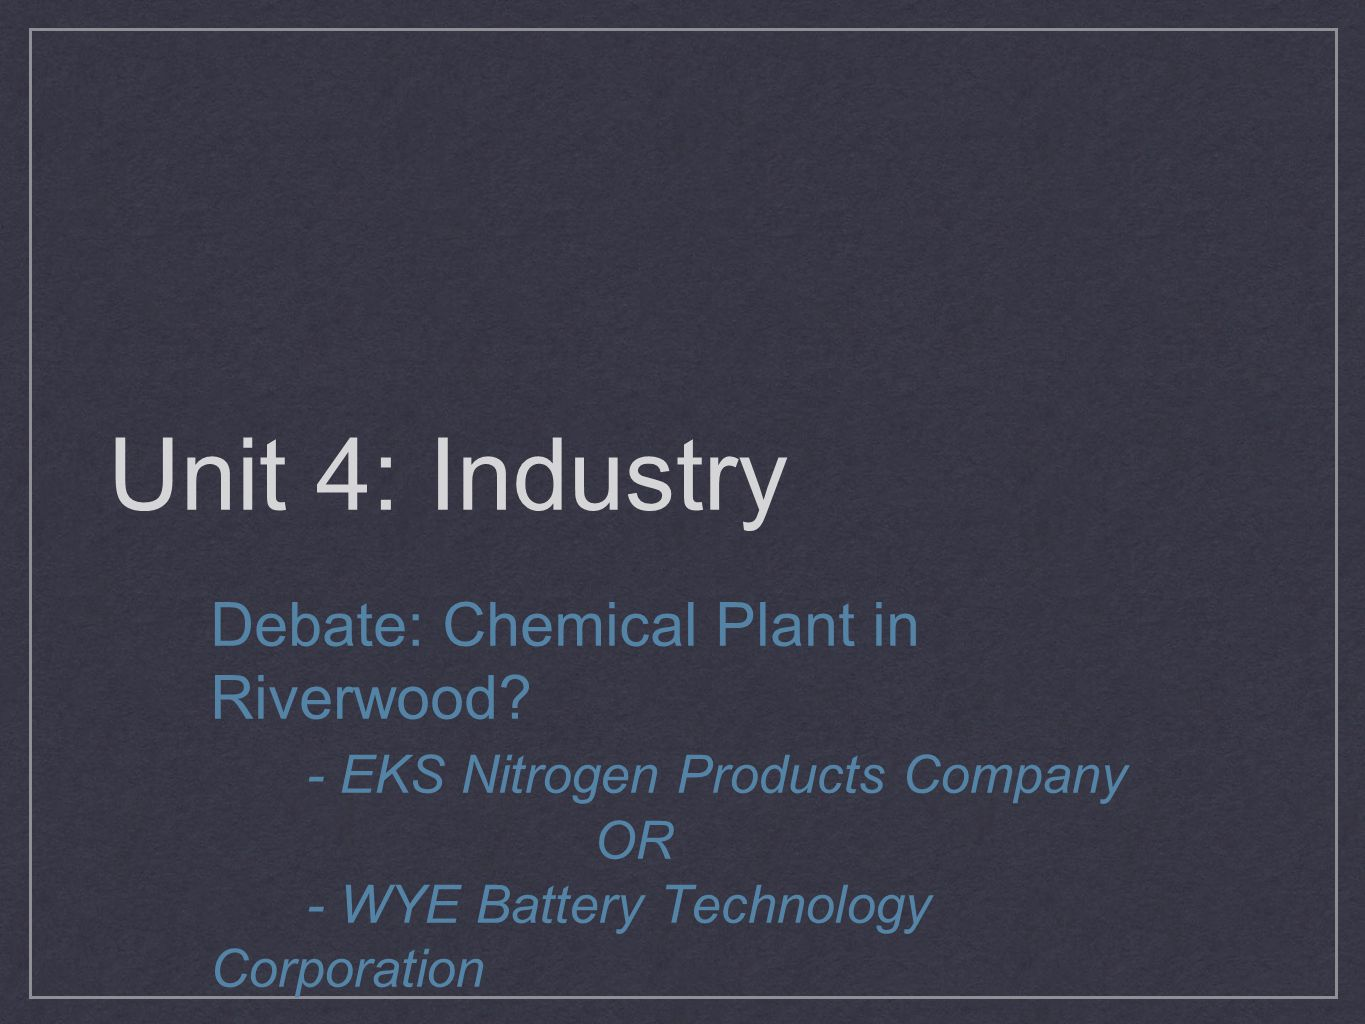 Unit 4: Industry Debate: Chemical Plant in Riverwood